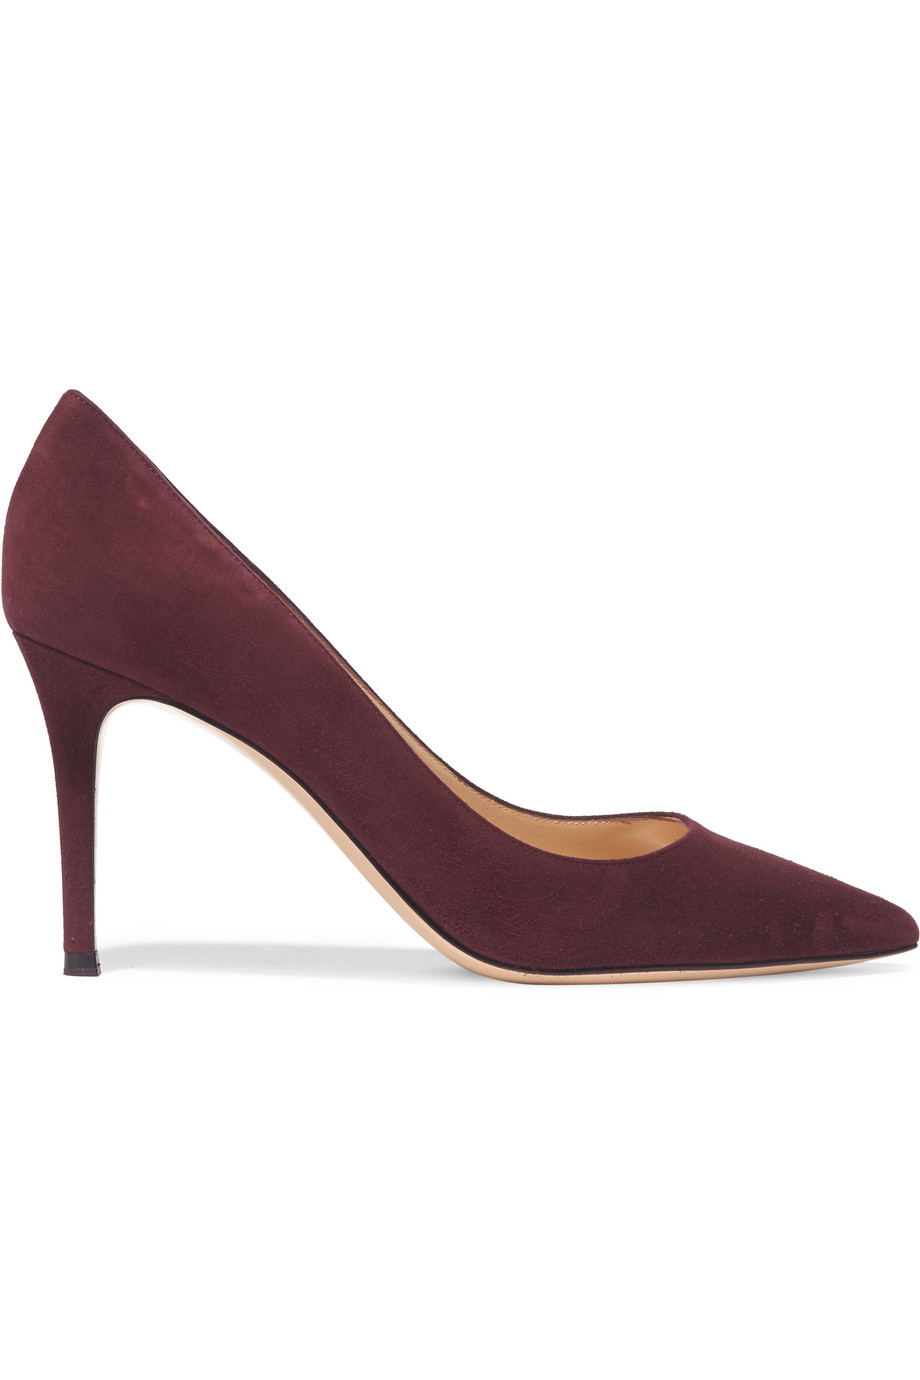 Gianvito Rossi Suede Pumps, Plum/Burgundy, Women's US Size: 5, Size: 35.5